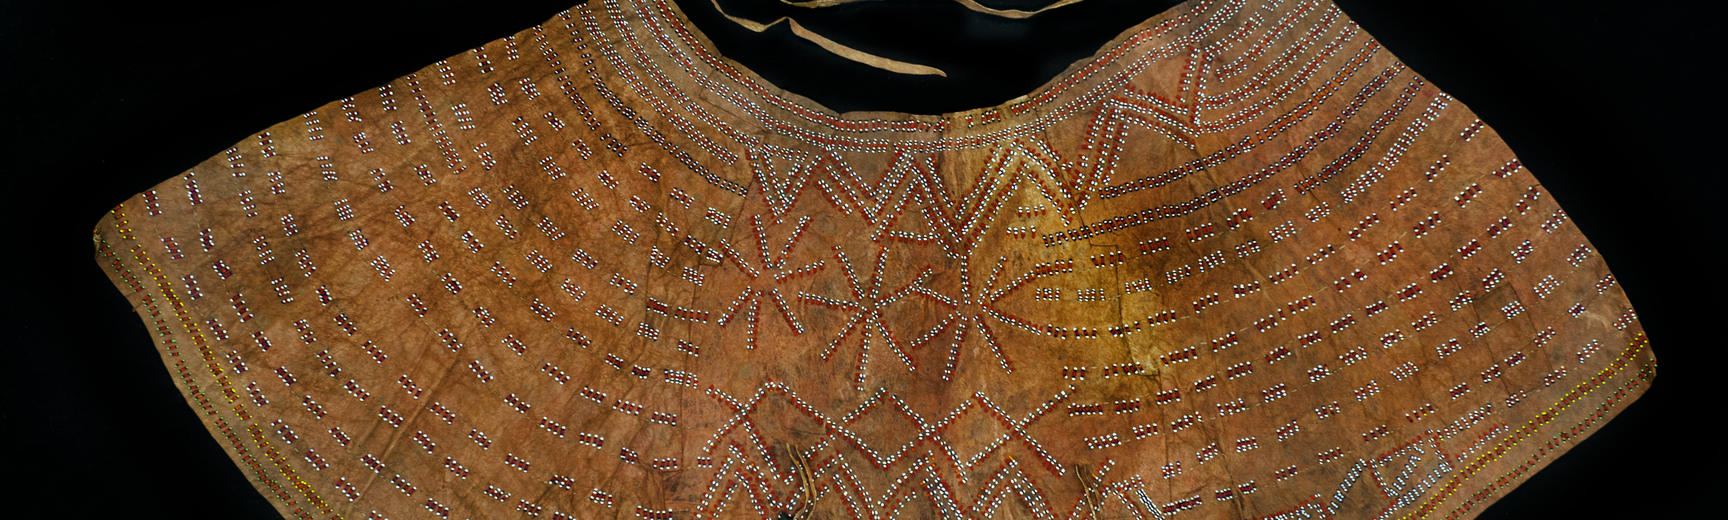 Beaded hide skirt. Donated by Elizabeth Porter. An Iraqw woman visited Elizabeth at her home near Karatu, in northern Tanzania, to ask if she would like to have a skirt made for her. This was after the donor witnessed such a skirt being worn by young wome